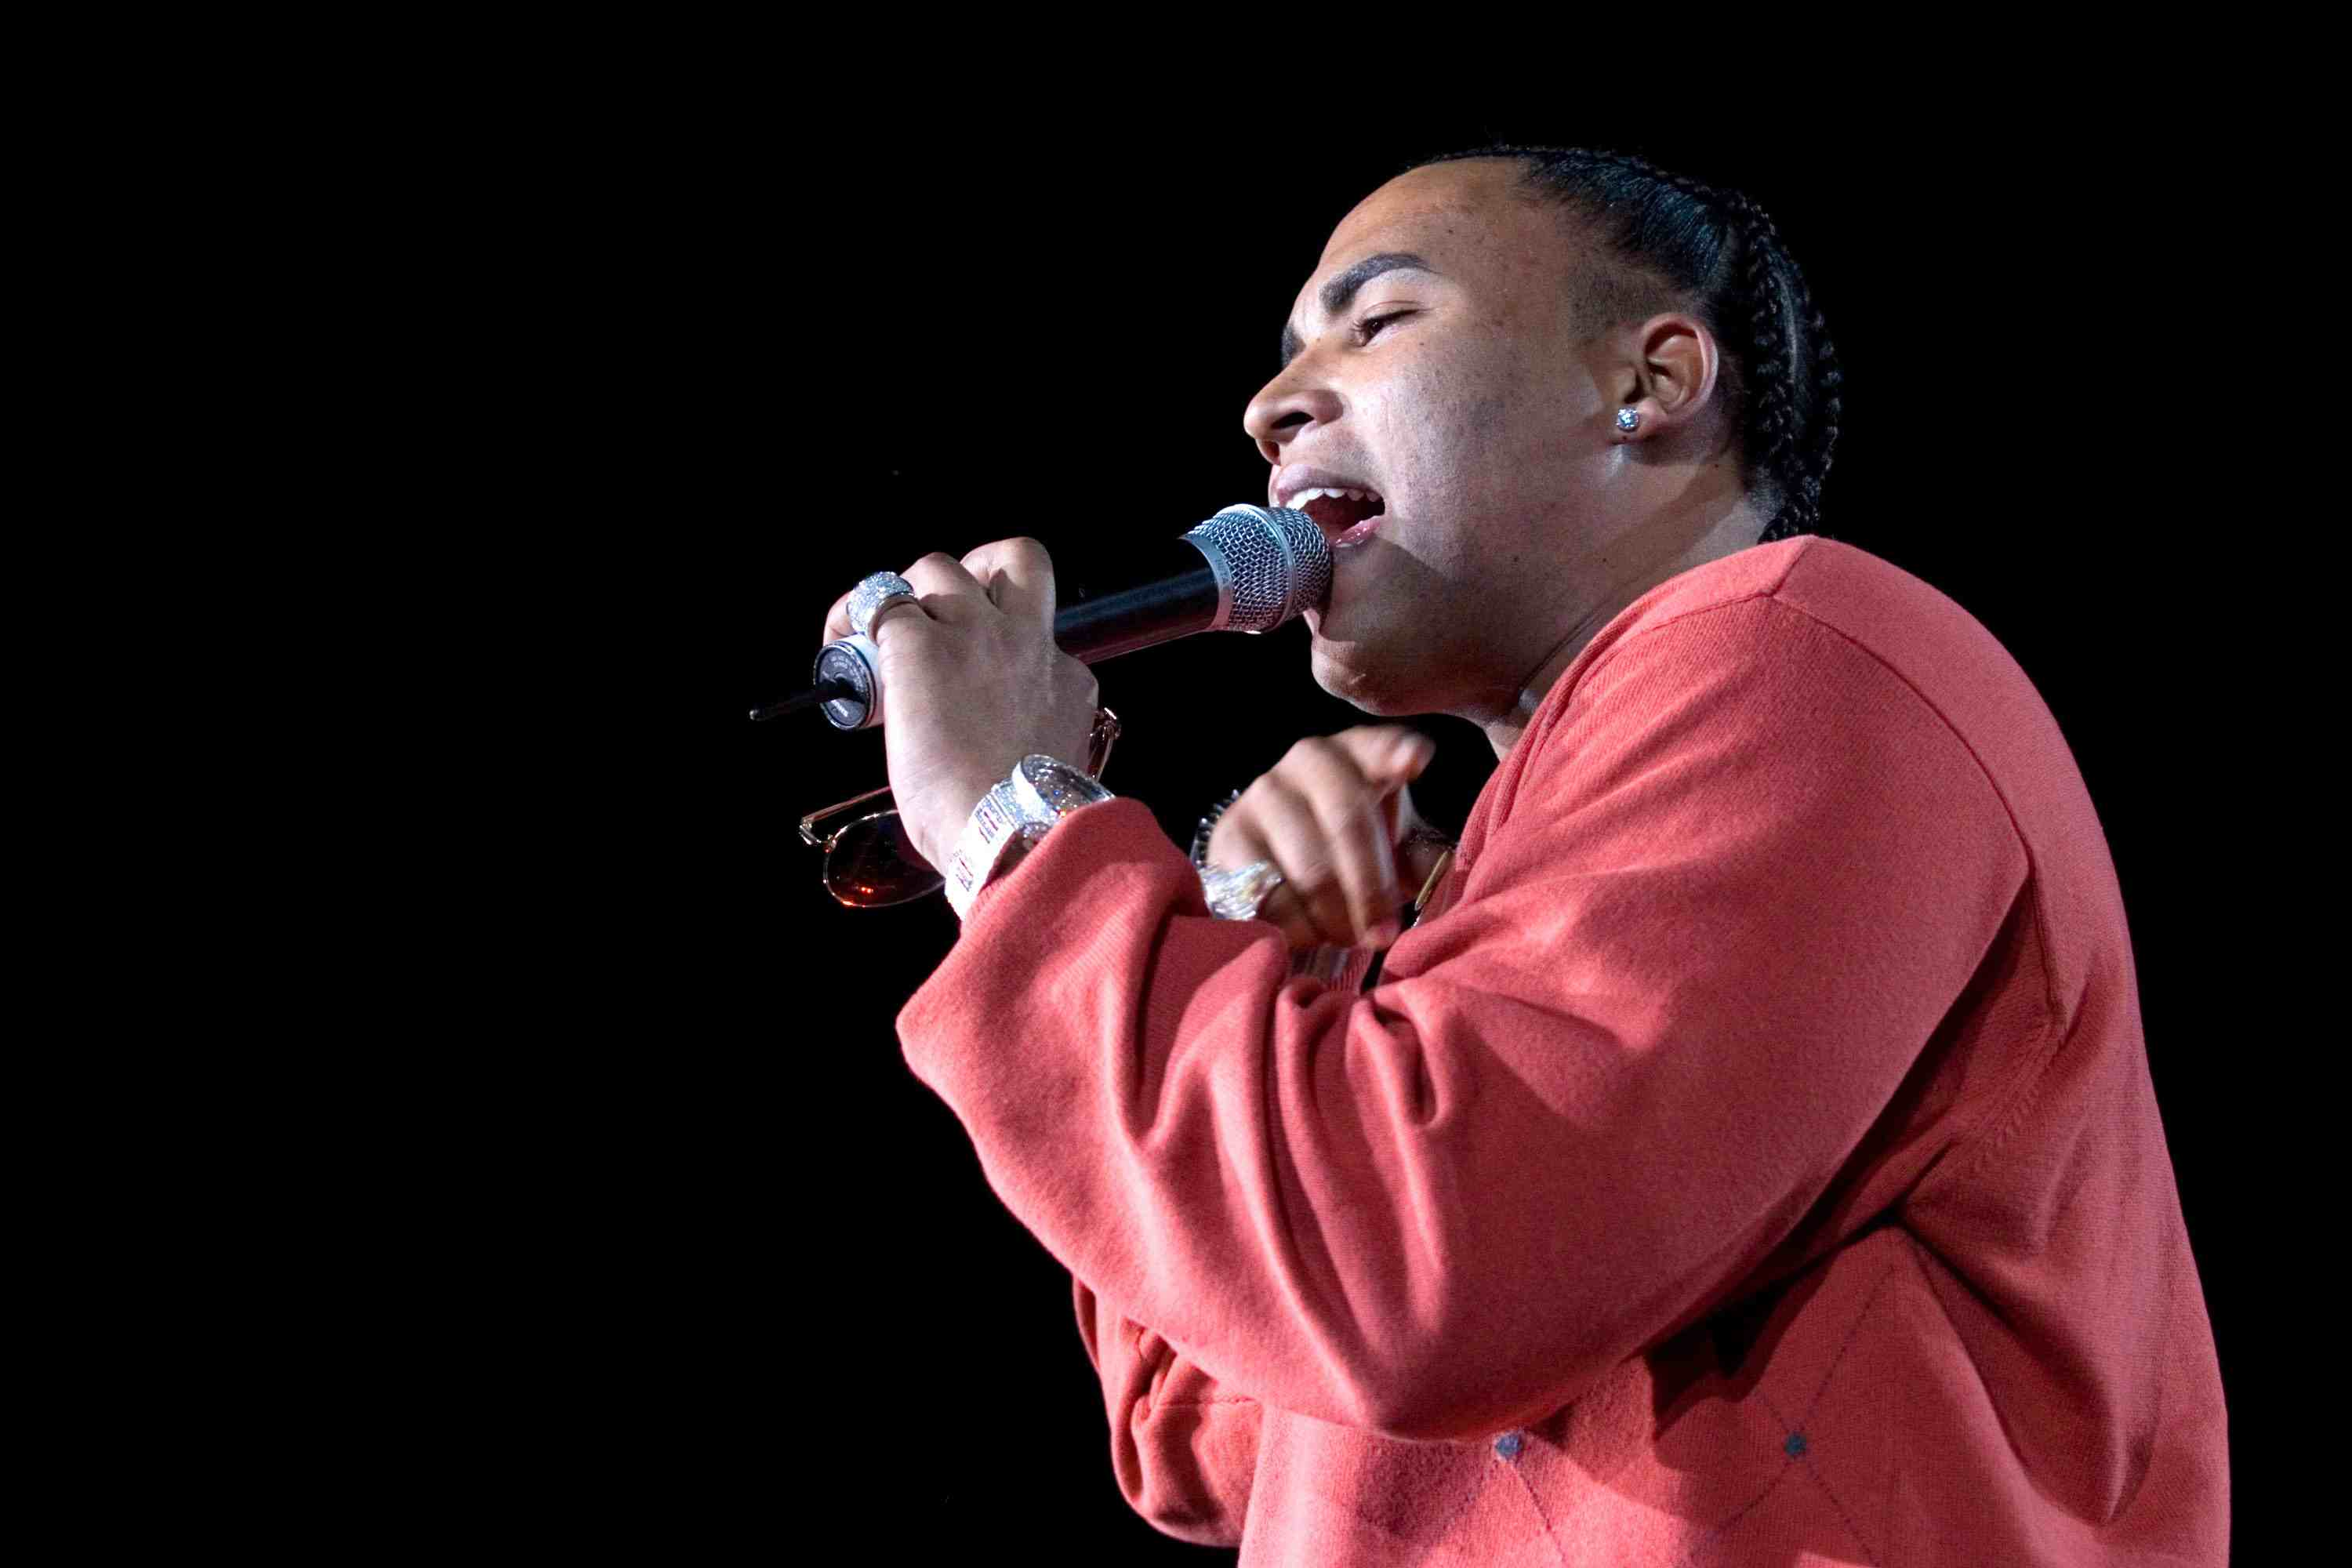 Don Omar during Teleton Mexico 2006 - Day 2 - Concert at Foro Sol in Mexico City, Mexico.